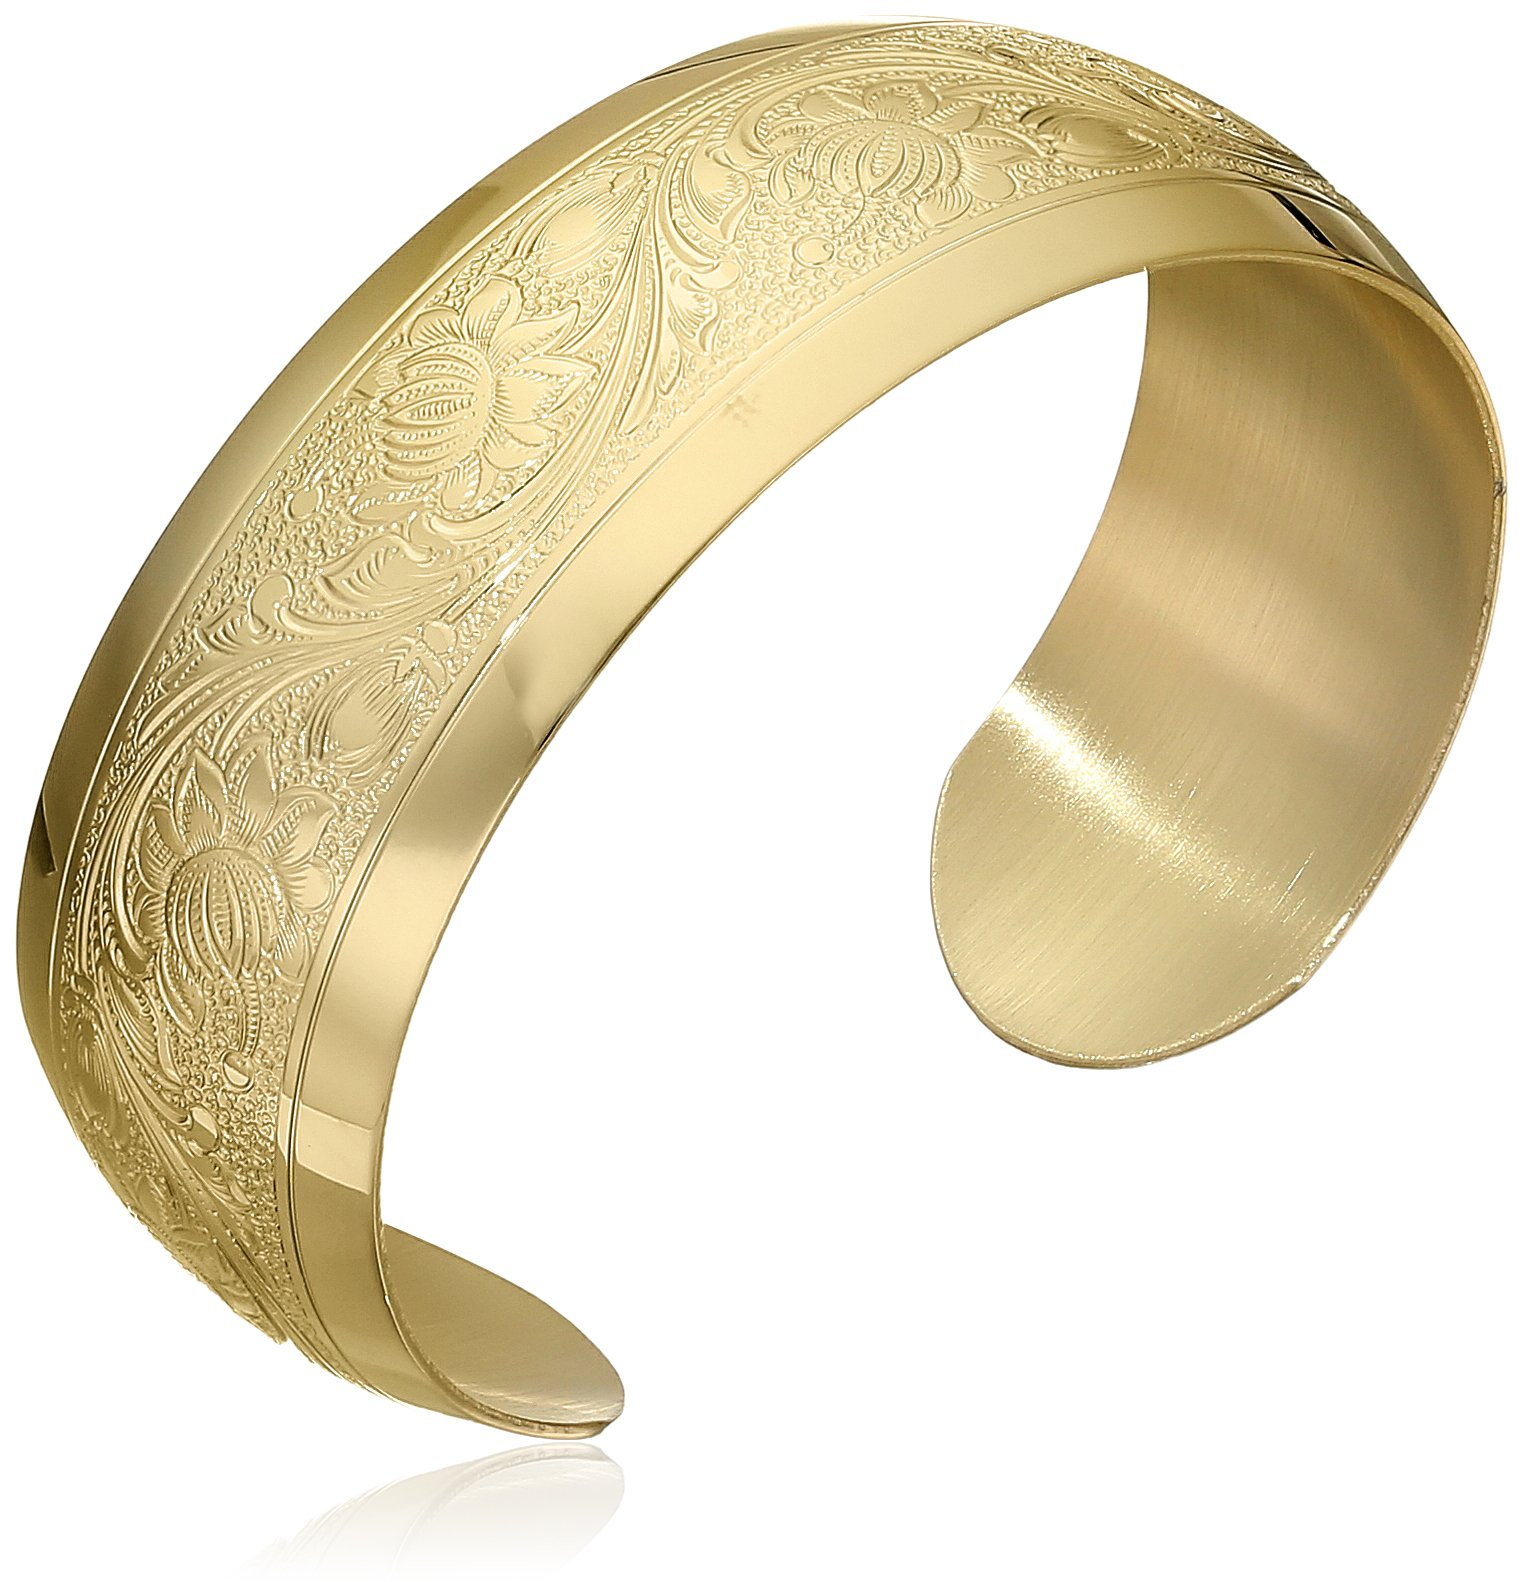 14k Yellow Gold-Filled Embossed Flower Design Cuff Bracelet